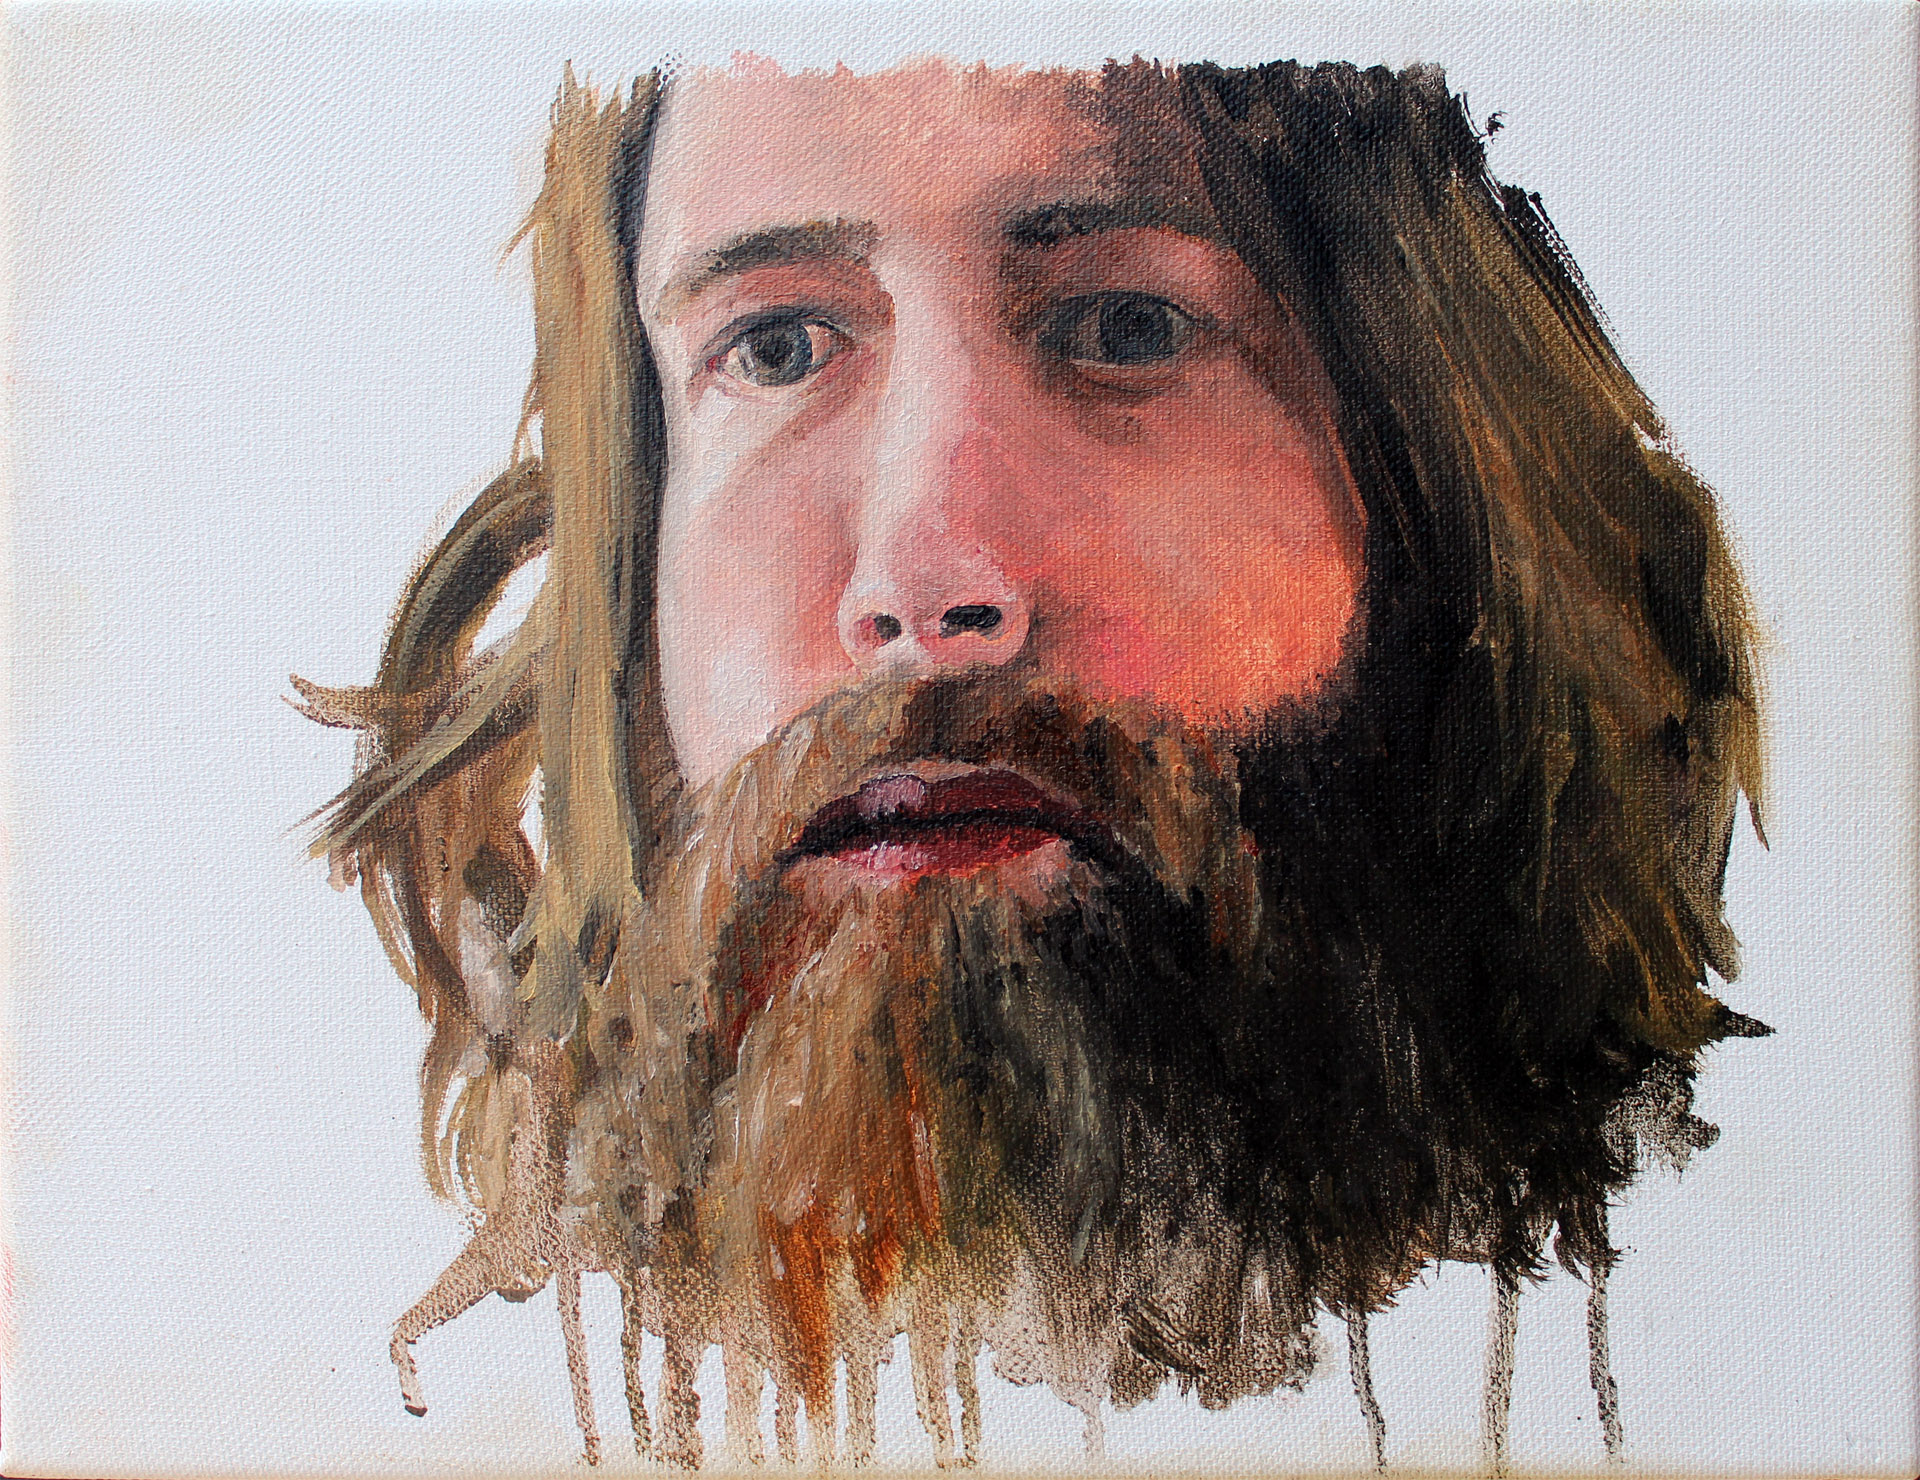 Self Portrait_brandon roth_2012_lores